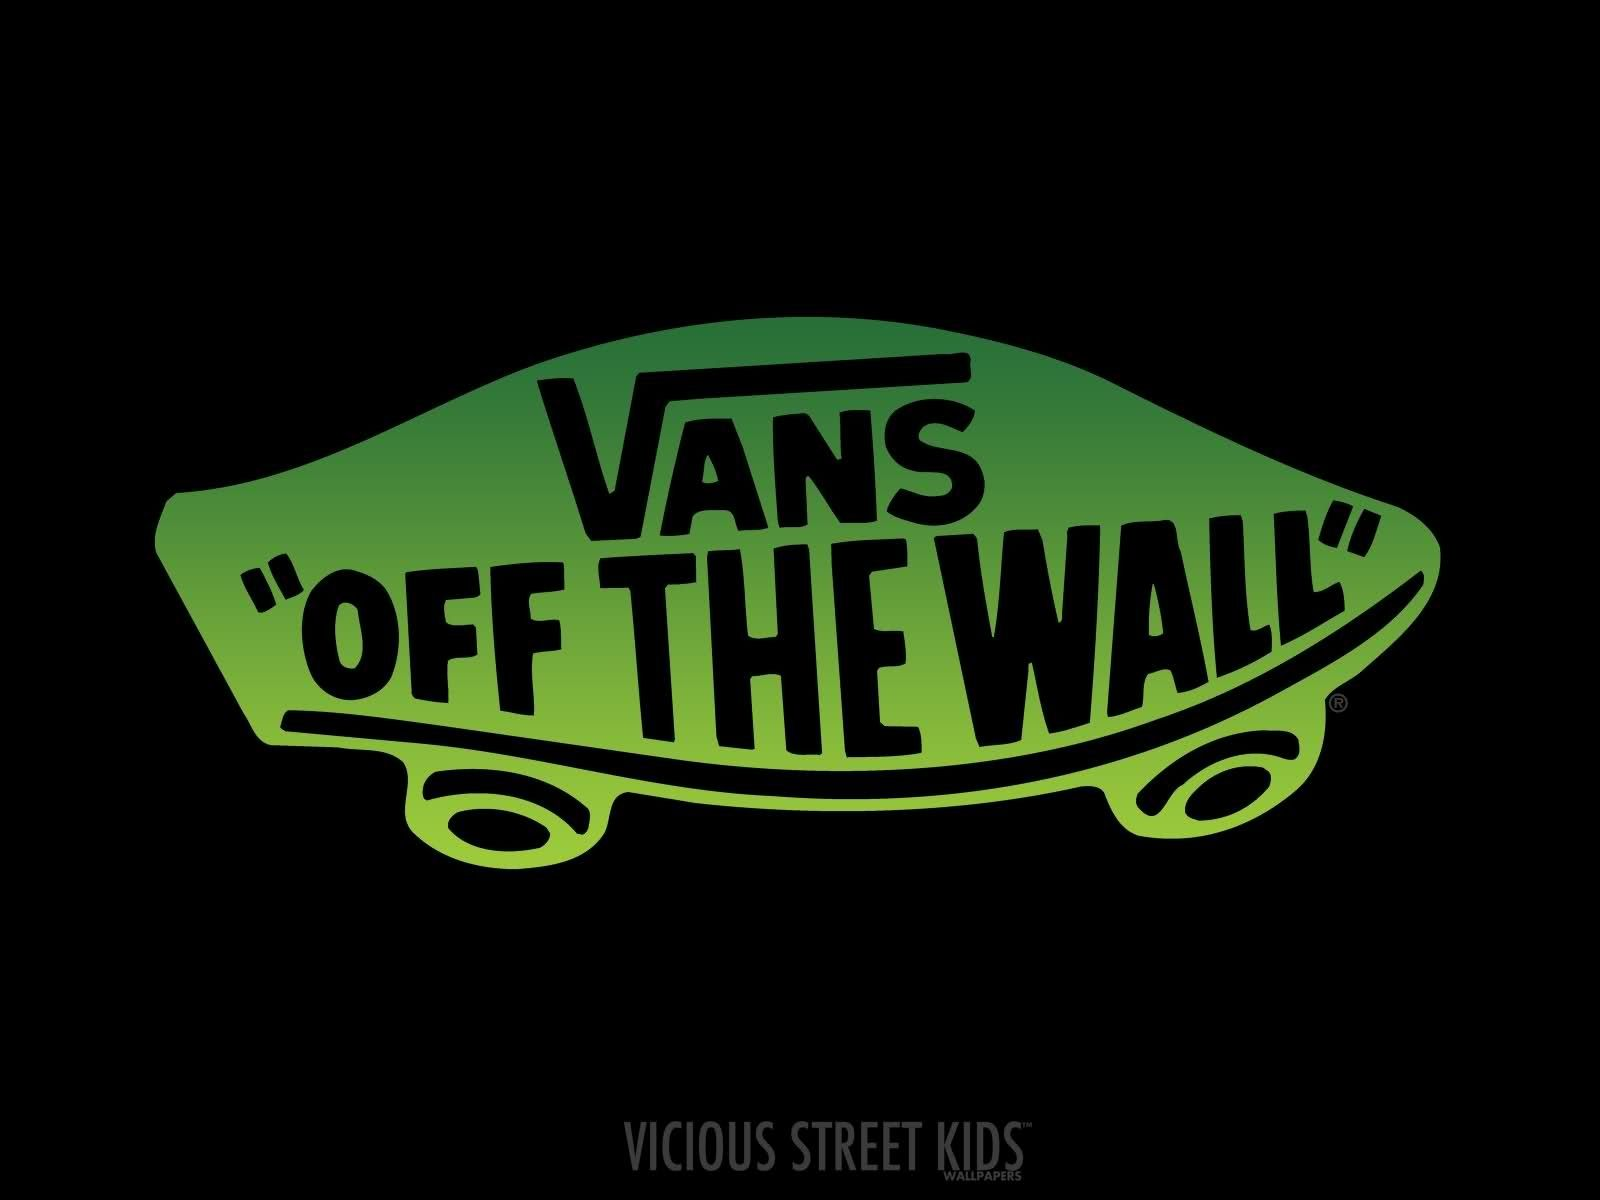 Green Logo Vans Off The Wall Logo Hd Wallpaper 1600x1200px Desktop